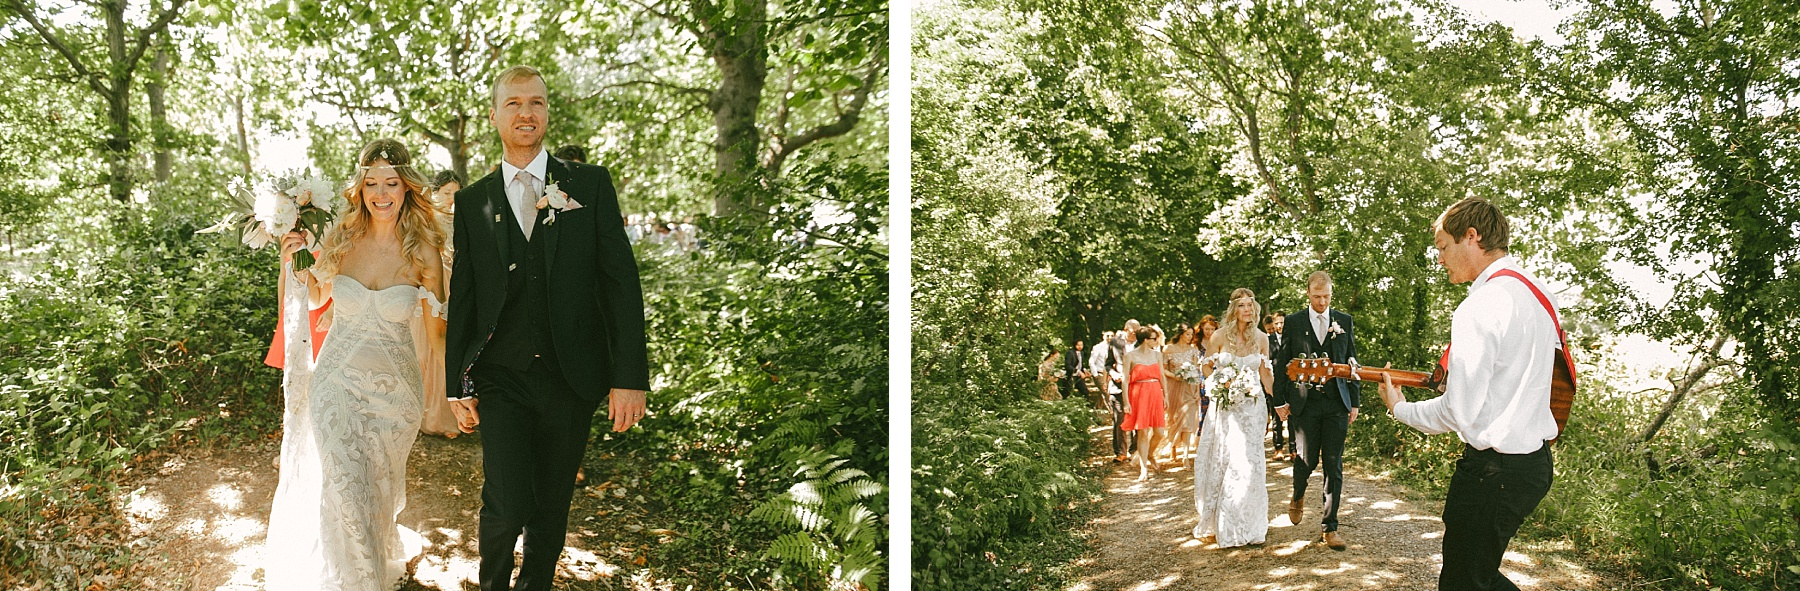 Summer wedding Turnbury Woods